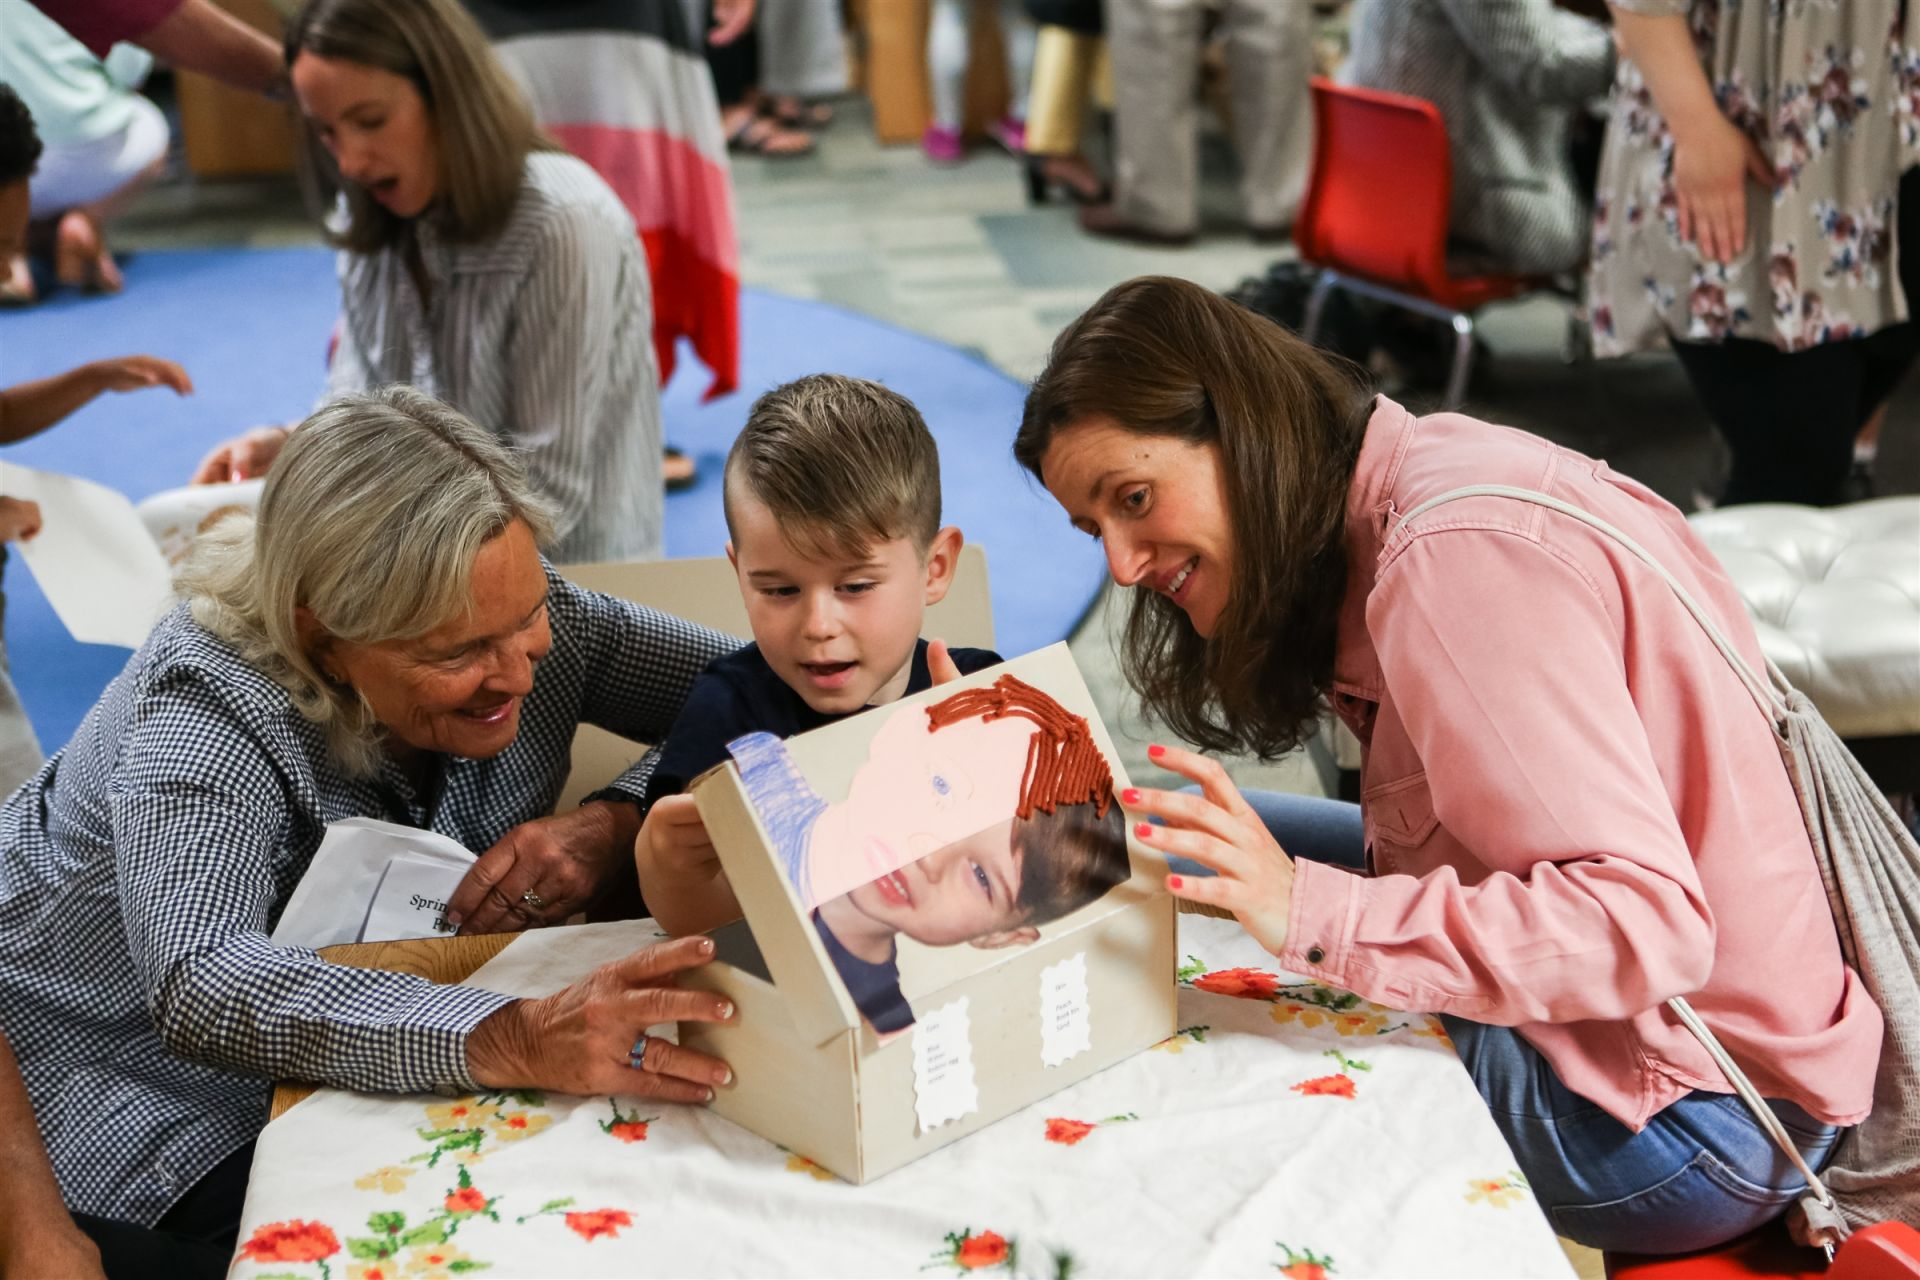 From identity boxes to tree guides and from interactive art stations to identity books, each classroom displays their work in a gallery for families to observe and discuss with their child. This end-of-the-year community event helps build the foundation for an Orchard education.